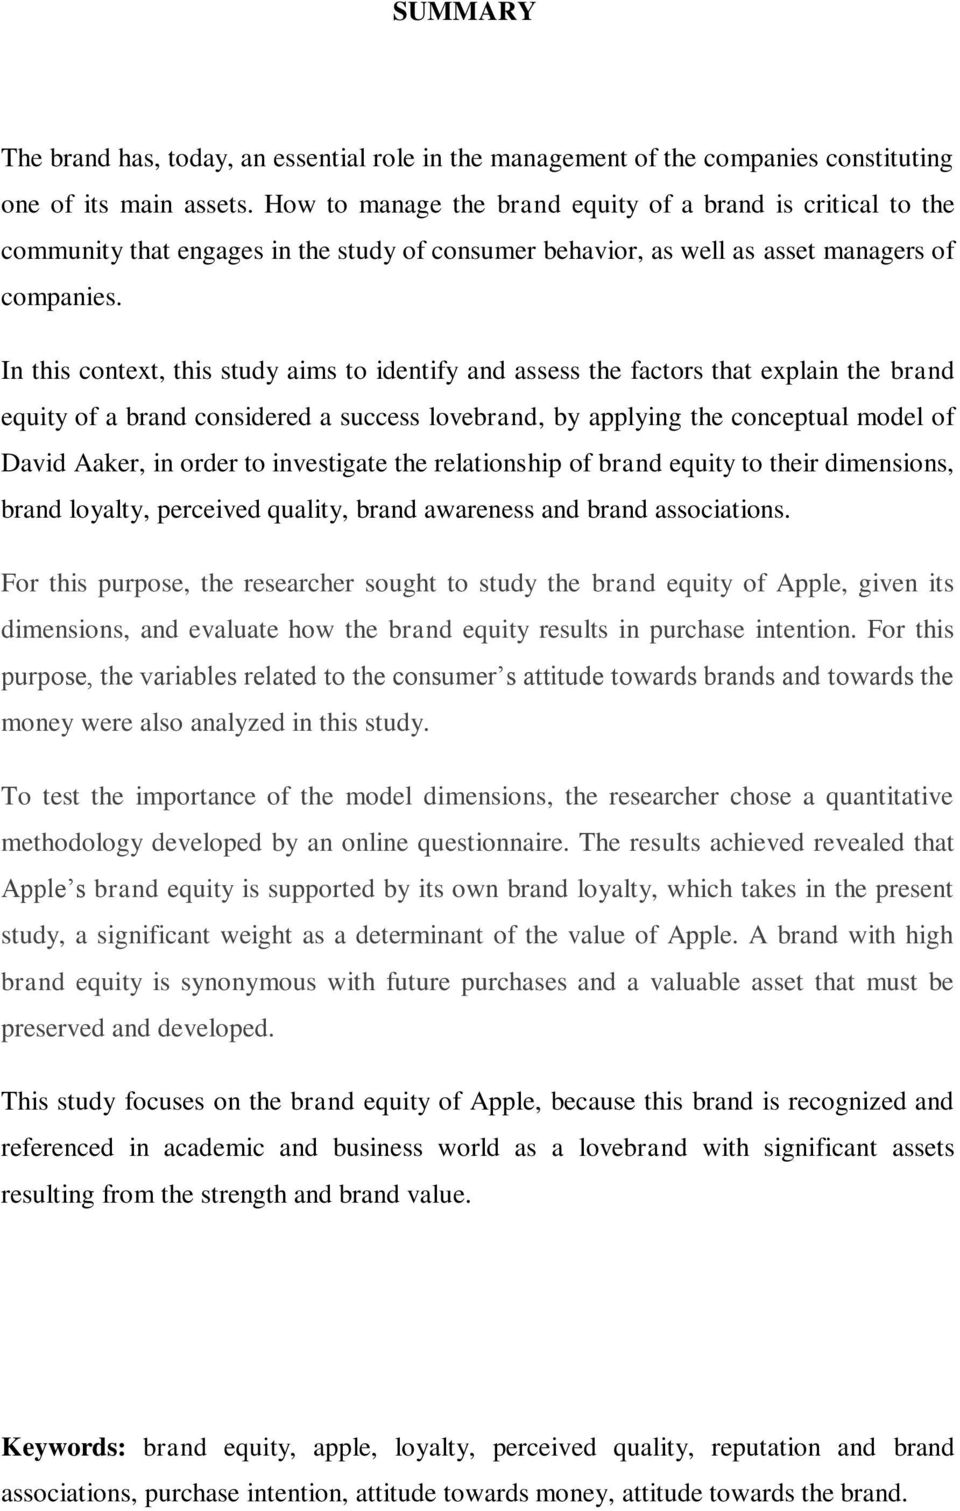 In this context, this study aims to identify and assess the factors that explain the brand equity of a brand considered a success lovebrand, by applying the conceptual model of David Aaker, in order